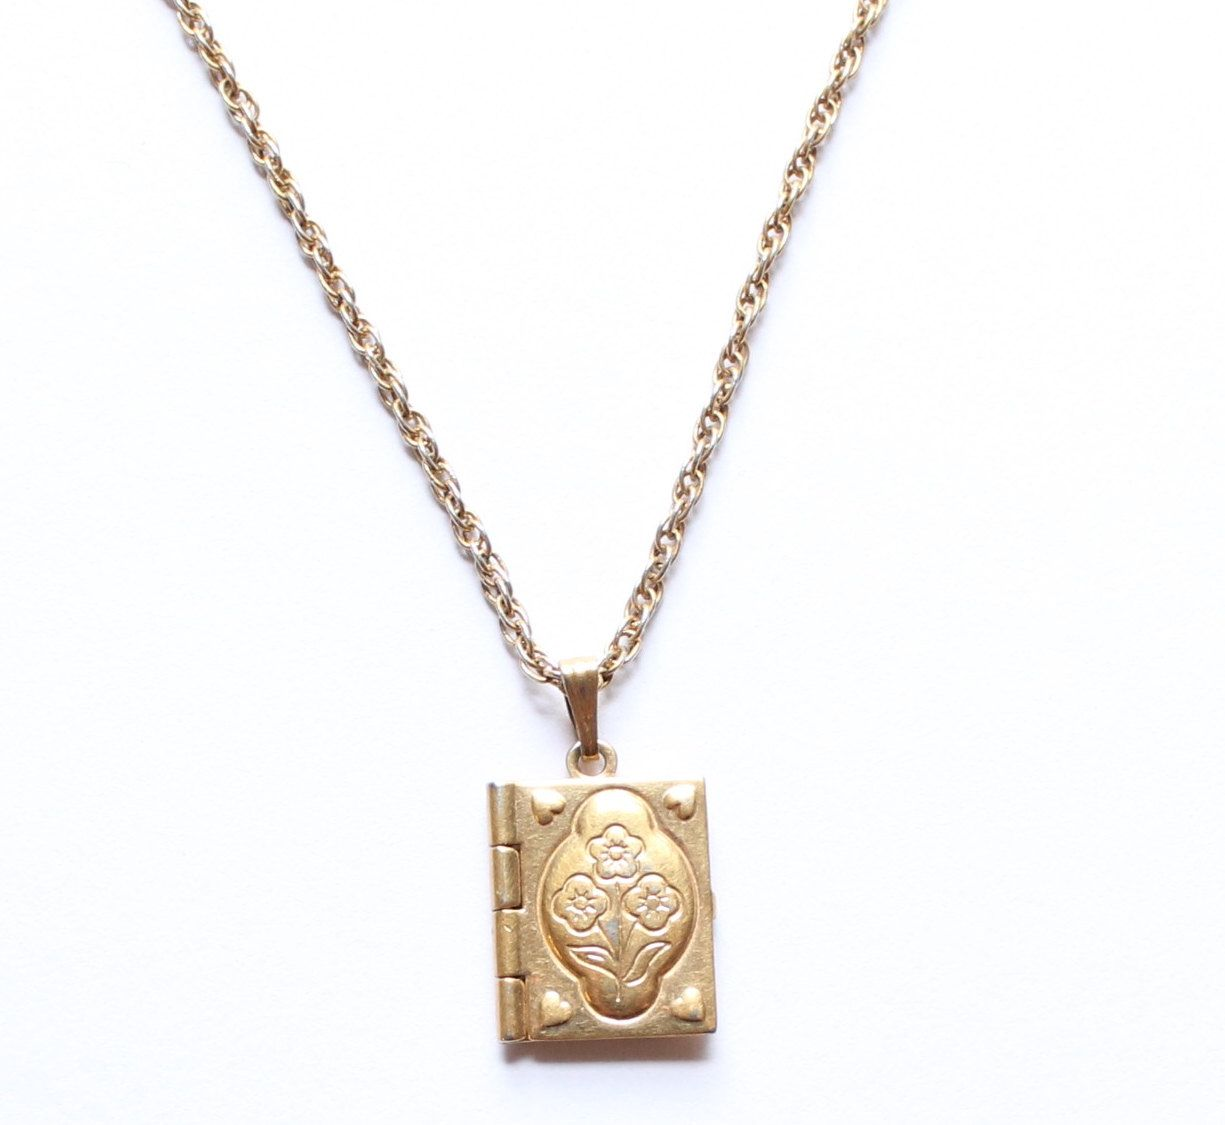 Avon Signed Gold Tone Book Locket Pendant Necklace by paststore on